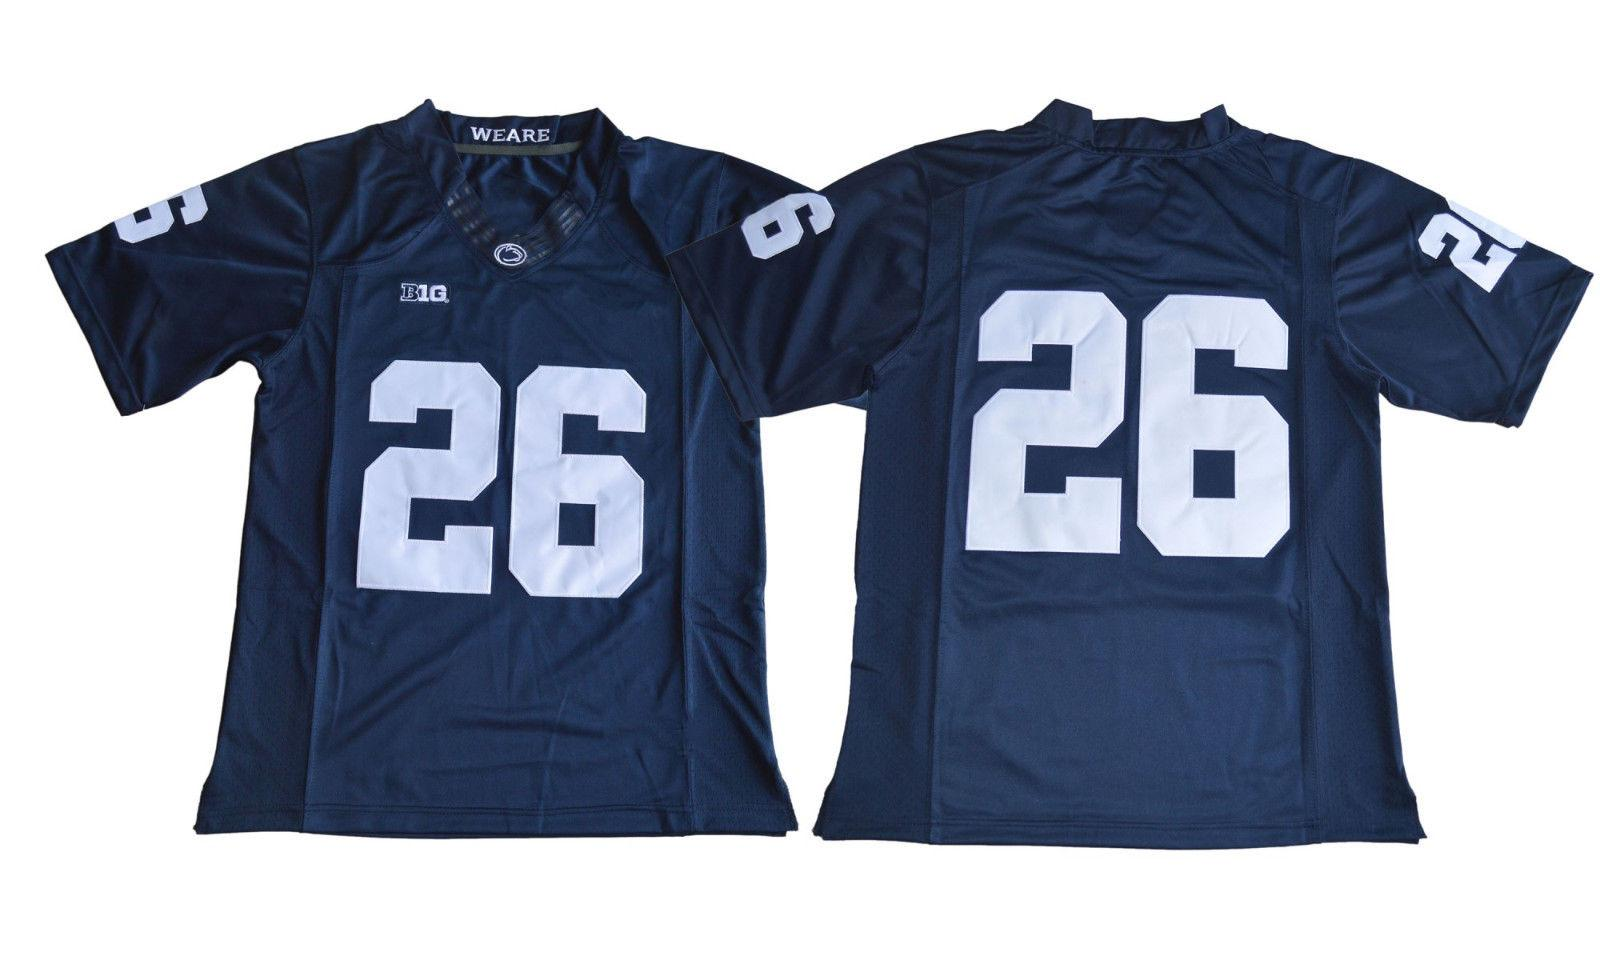 e67c5f10c Cheap Custom 2018 Draft No.2 Saquon Barkley 26 College Football Jersey Blue  Stitched Customize Any Number Name MEN WOMEN YOUTH XS 5XL UK 2019 From ...